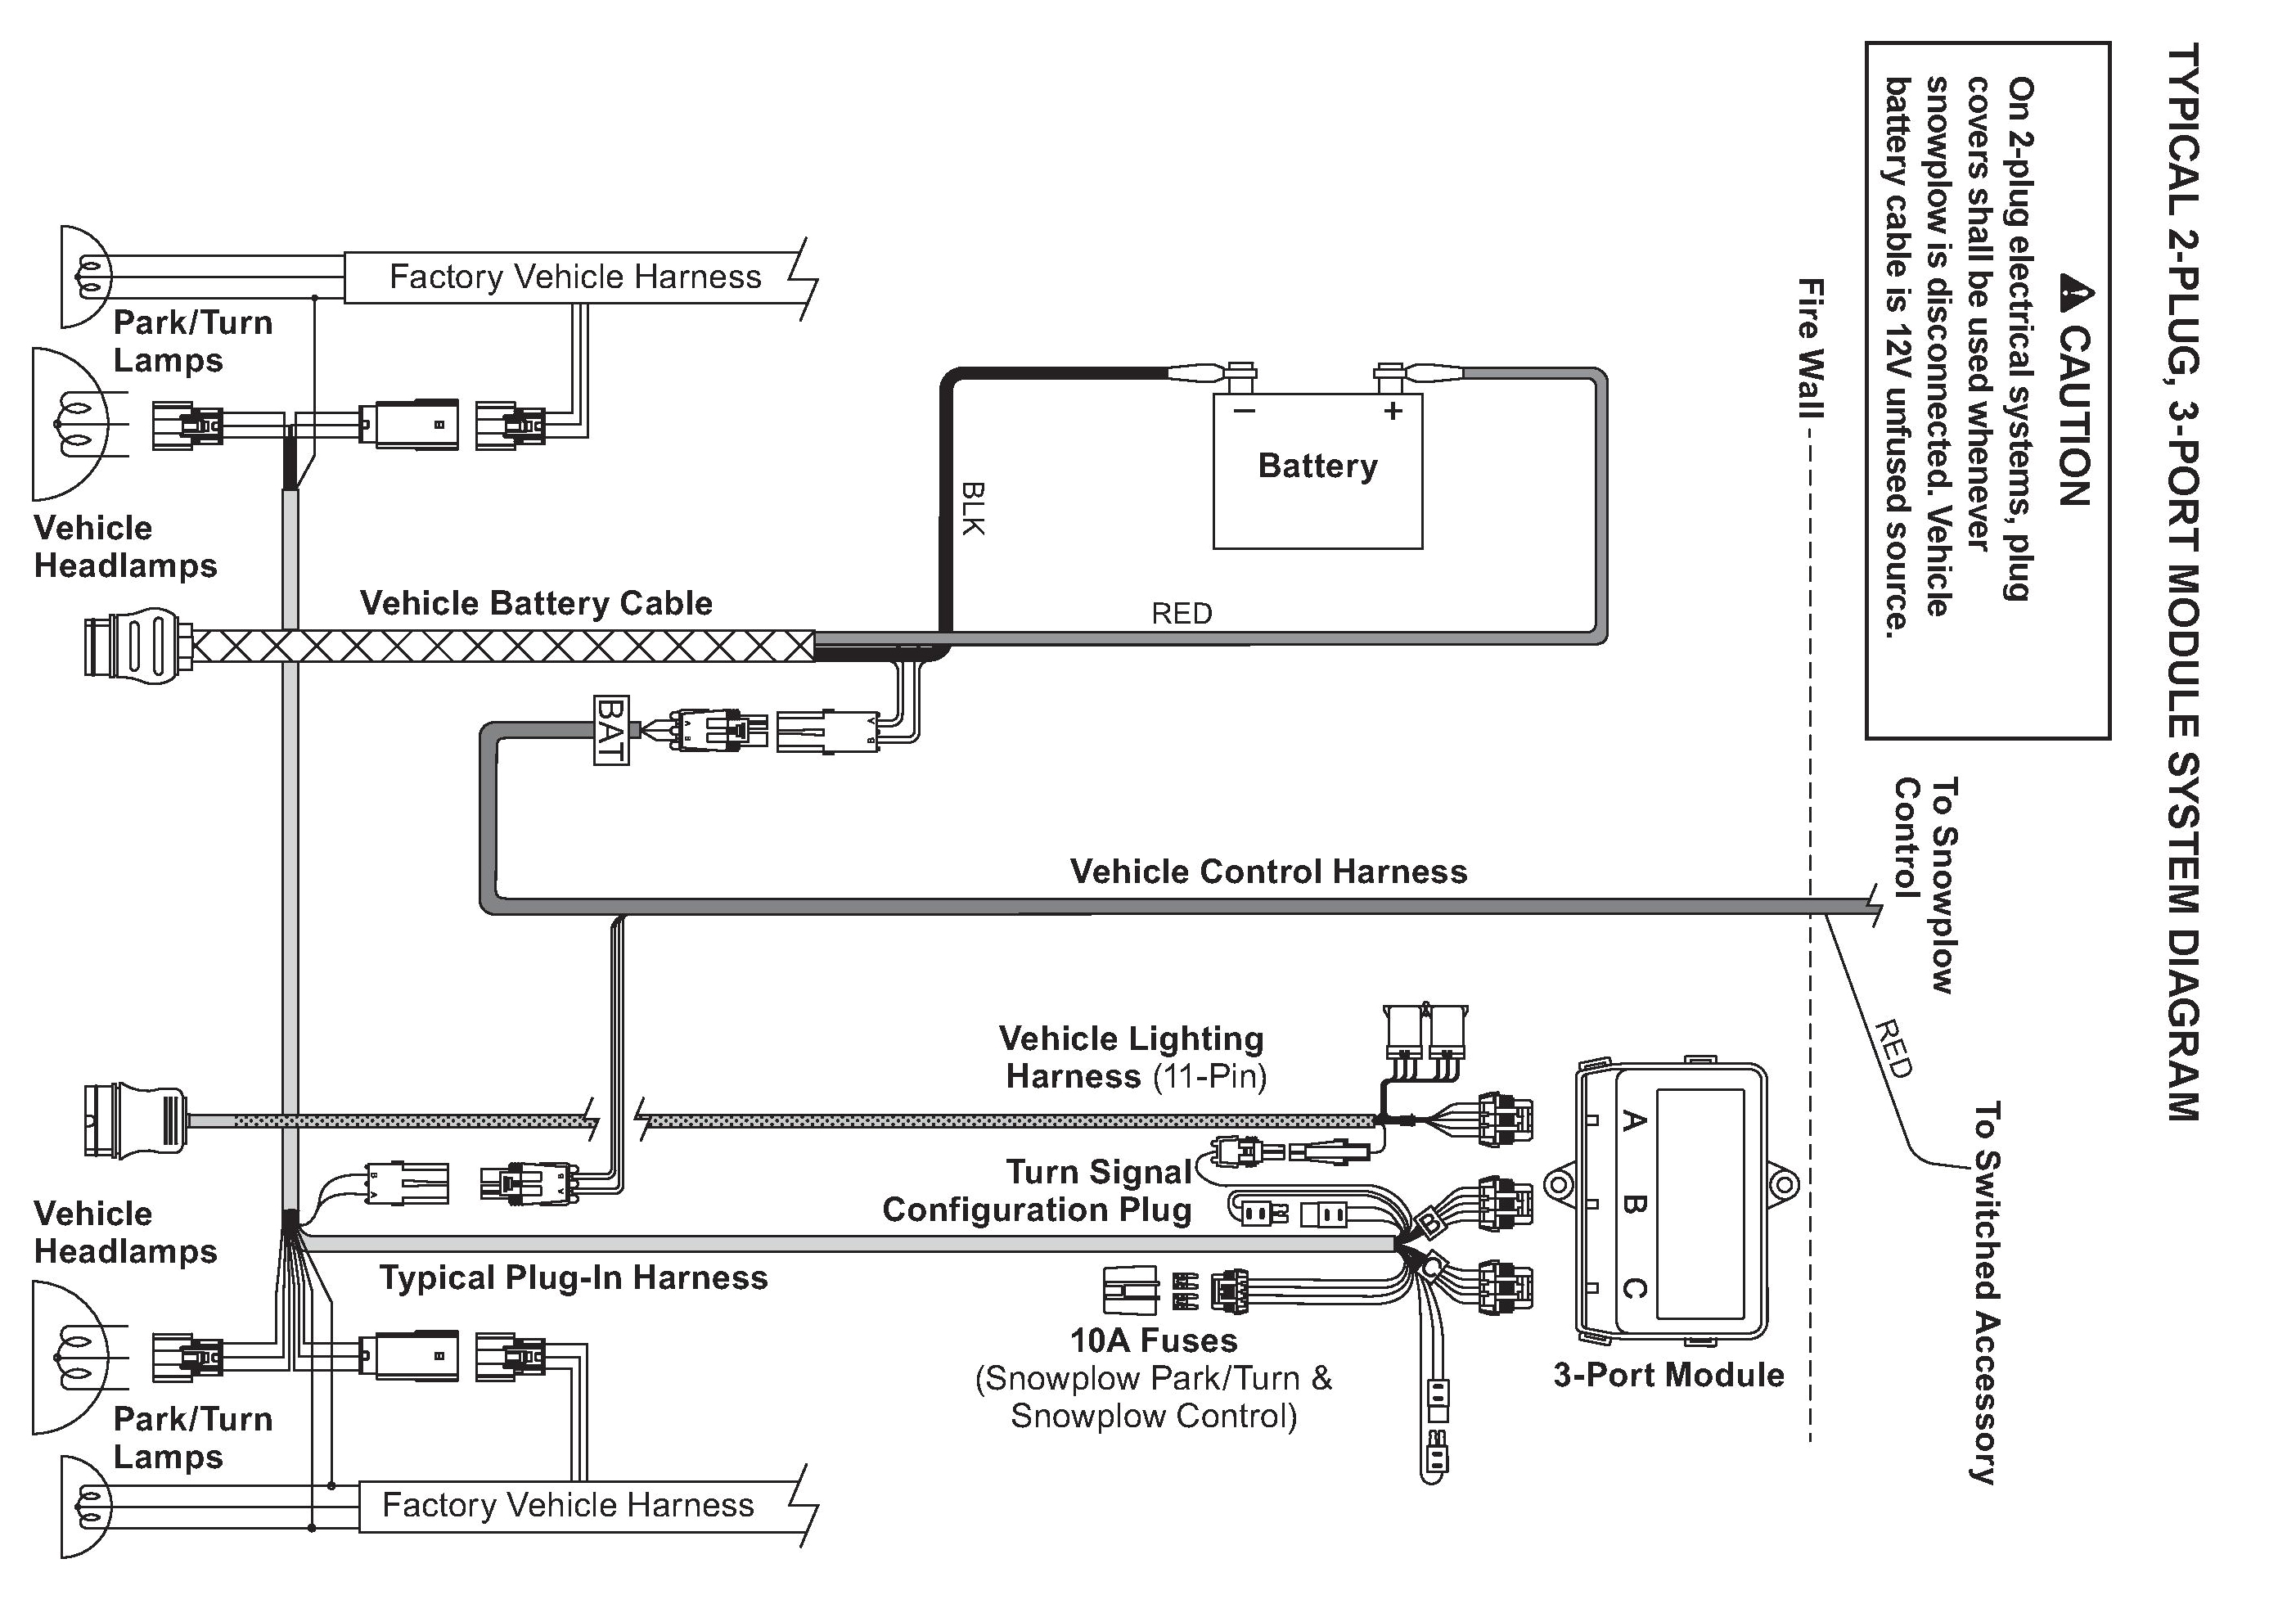 3 port isolation module wiring electrical western serviceyellow snow plow wiring diagram box 12